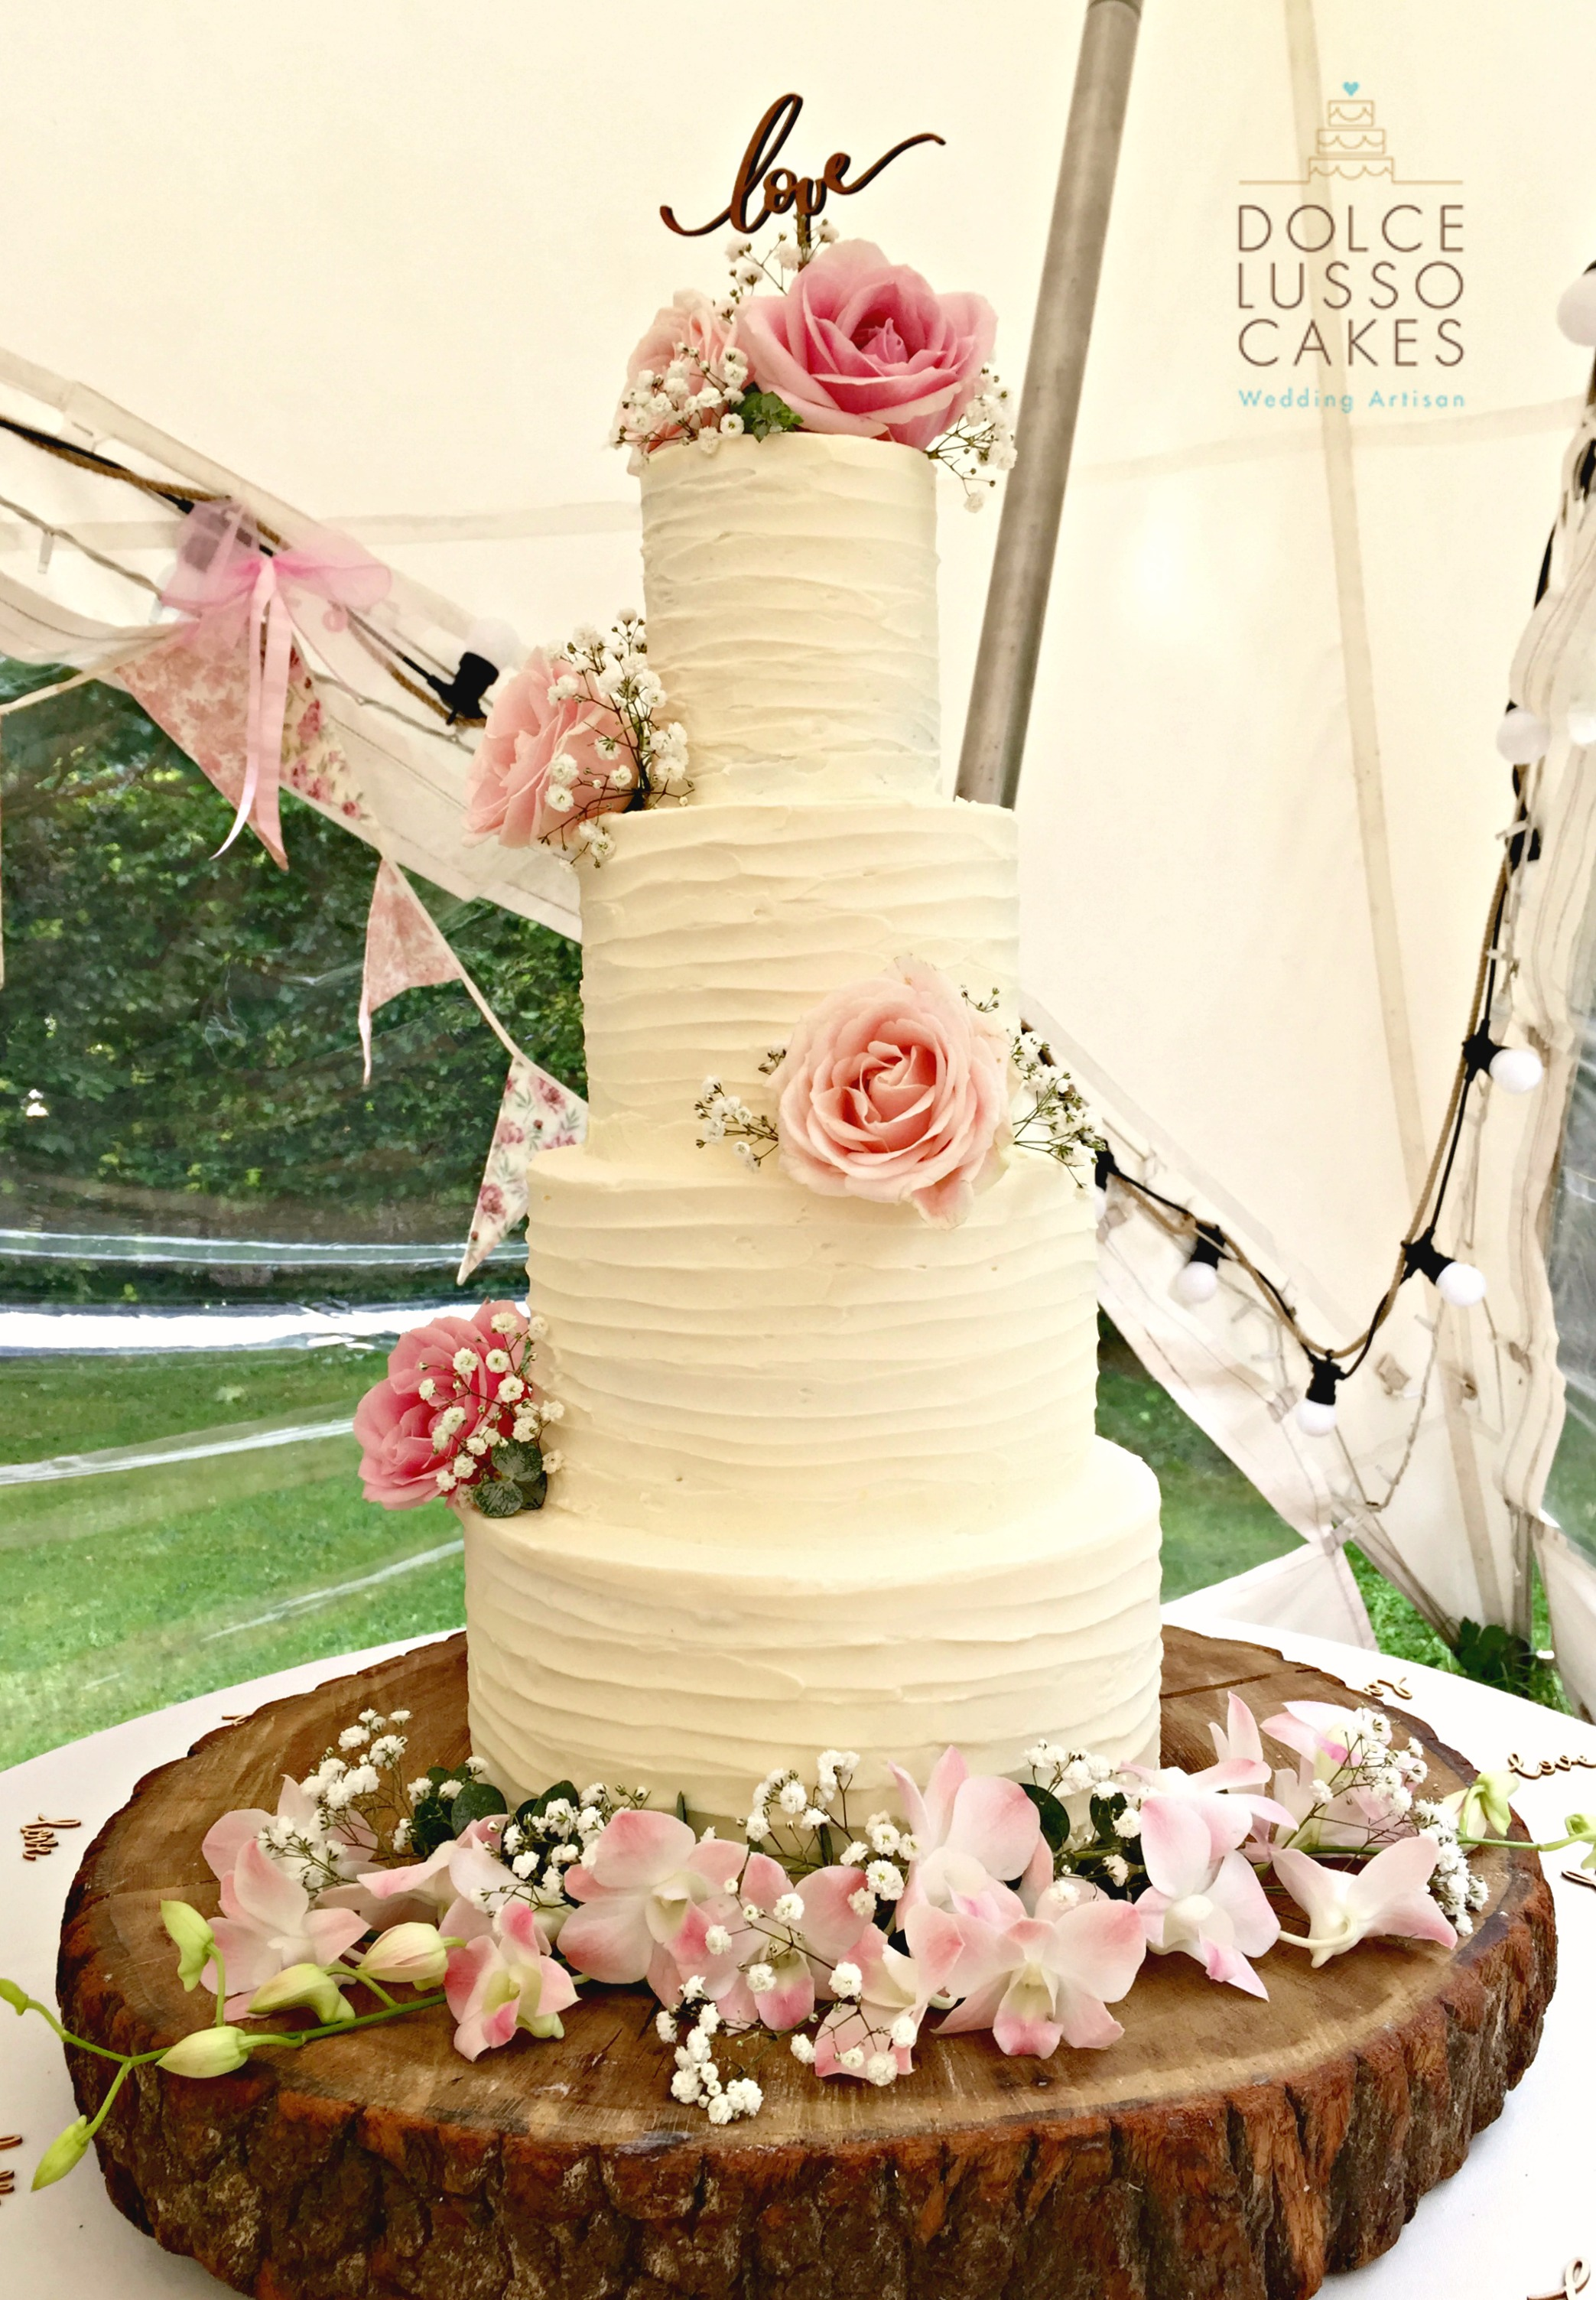 Dolce Lusso Cakes 3 tier naked wedding cake fresh berries fruit log slice